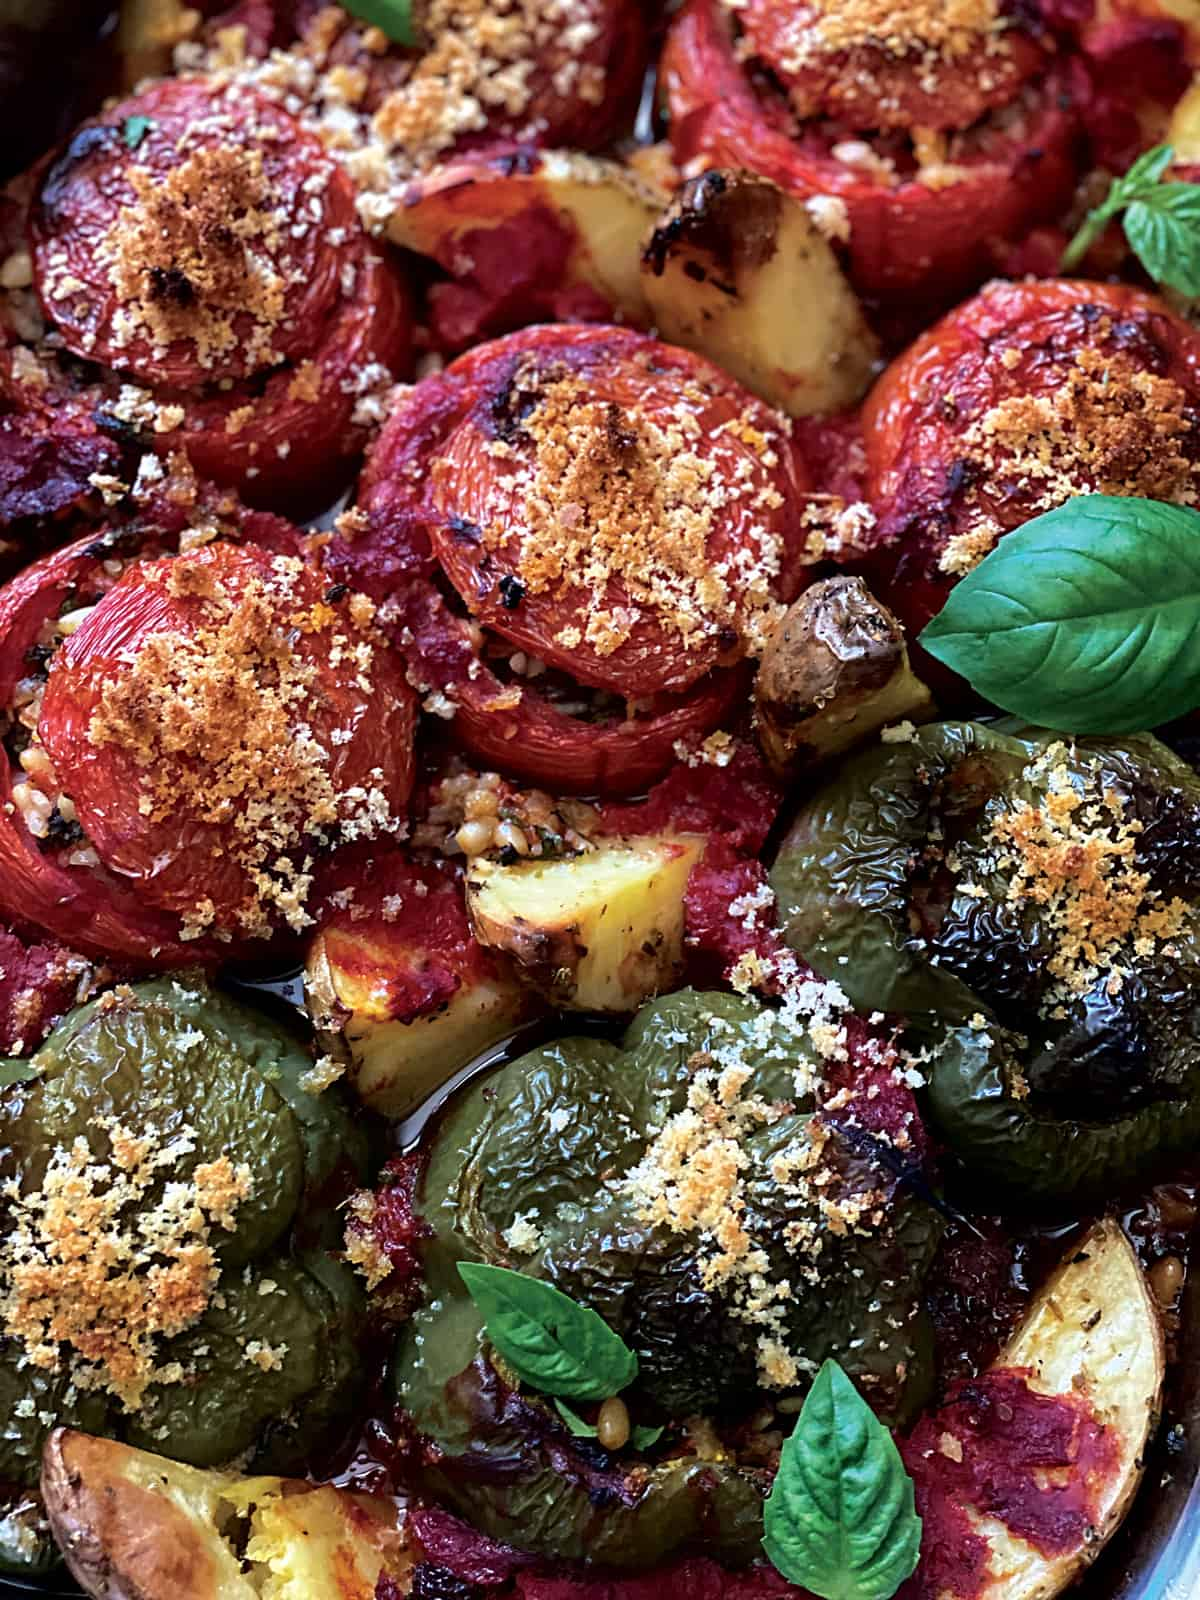 Stuffed tomatoes, bell peppers and potatoes in a tomato sauce.